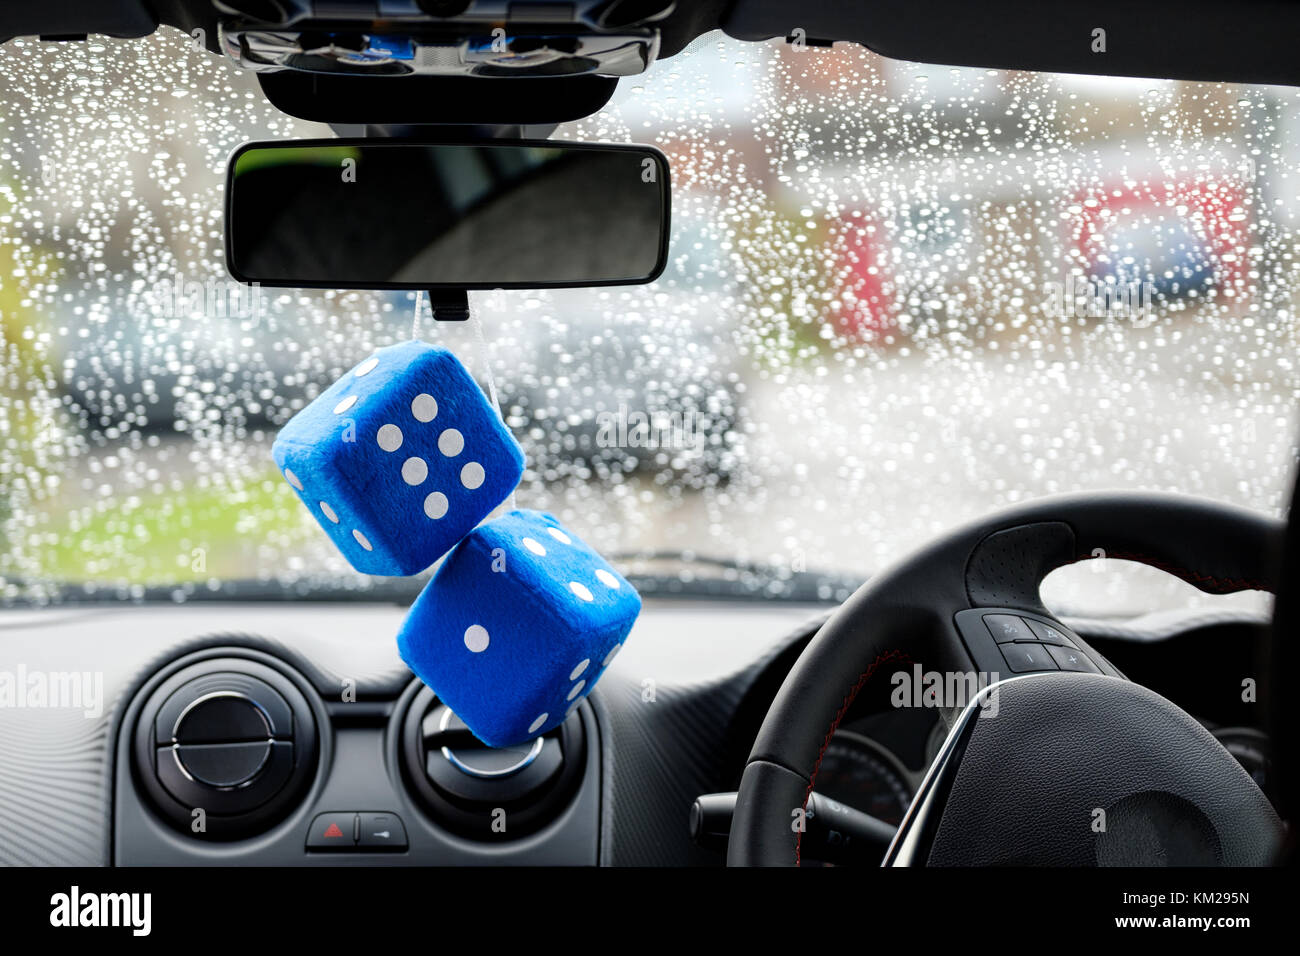 Two large, kitsch, blue, furry or fuzzy dice associated with boy racers in the seventies and eighties hang from - Stock Image